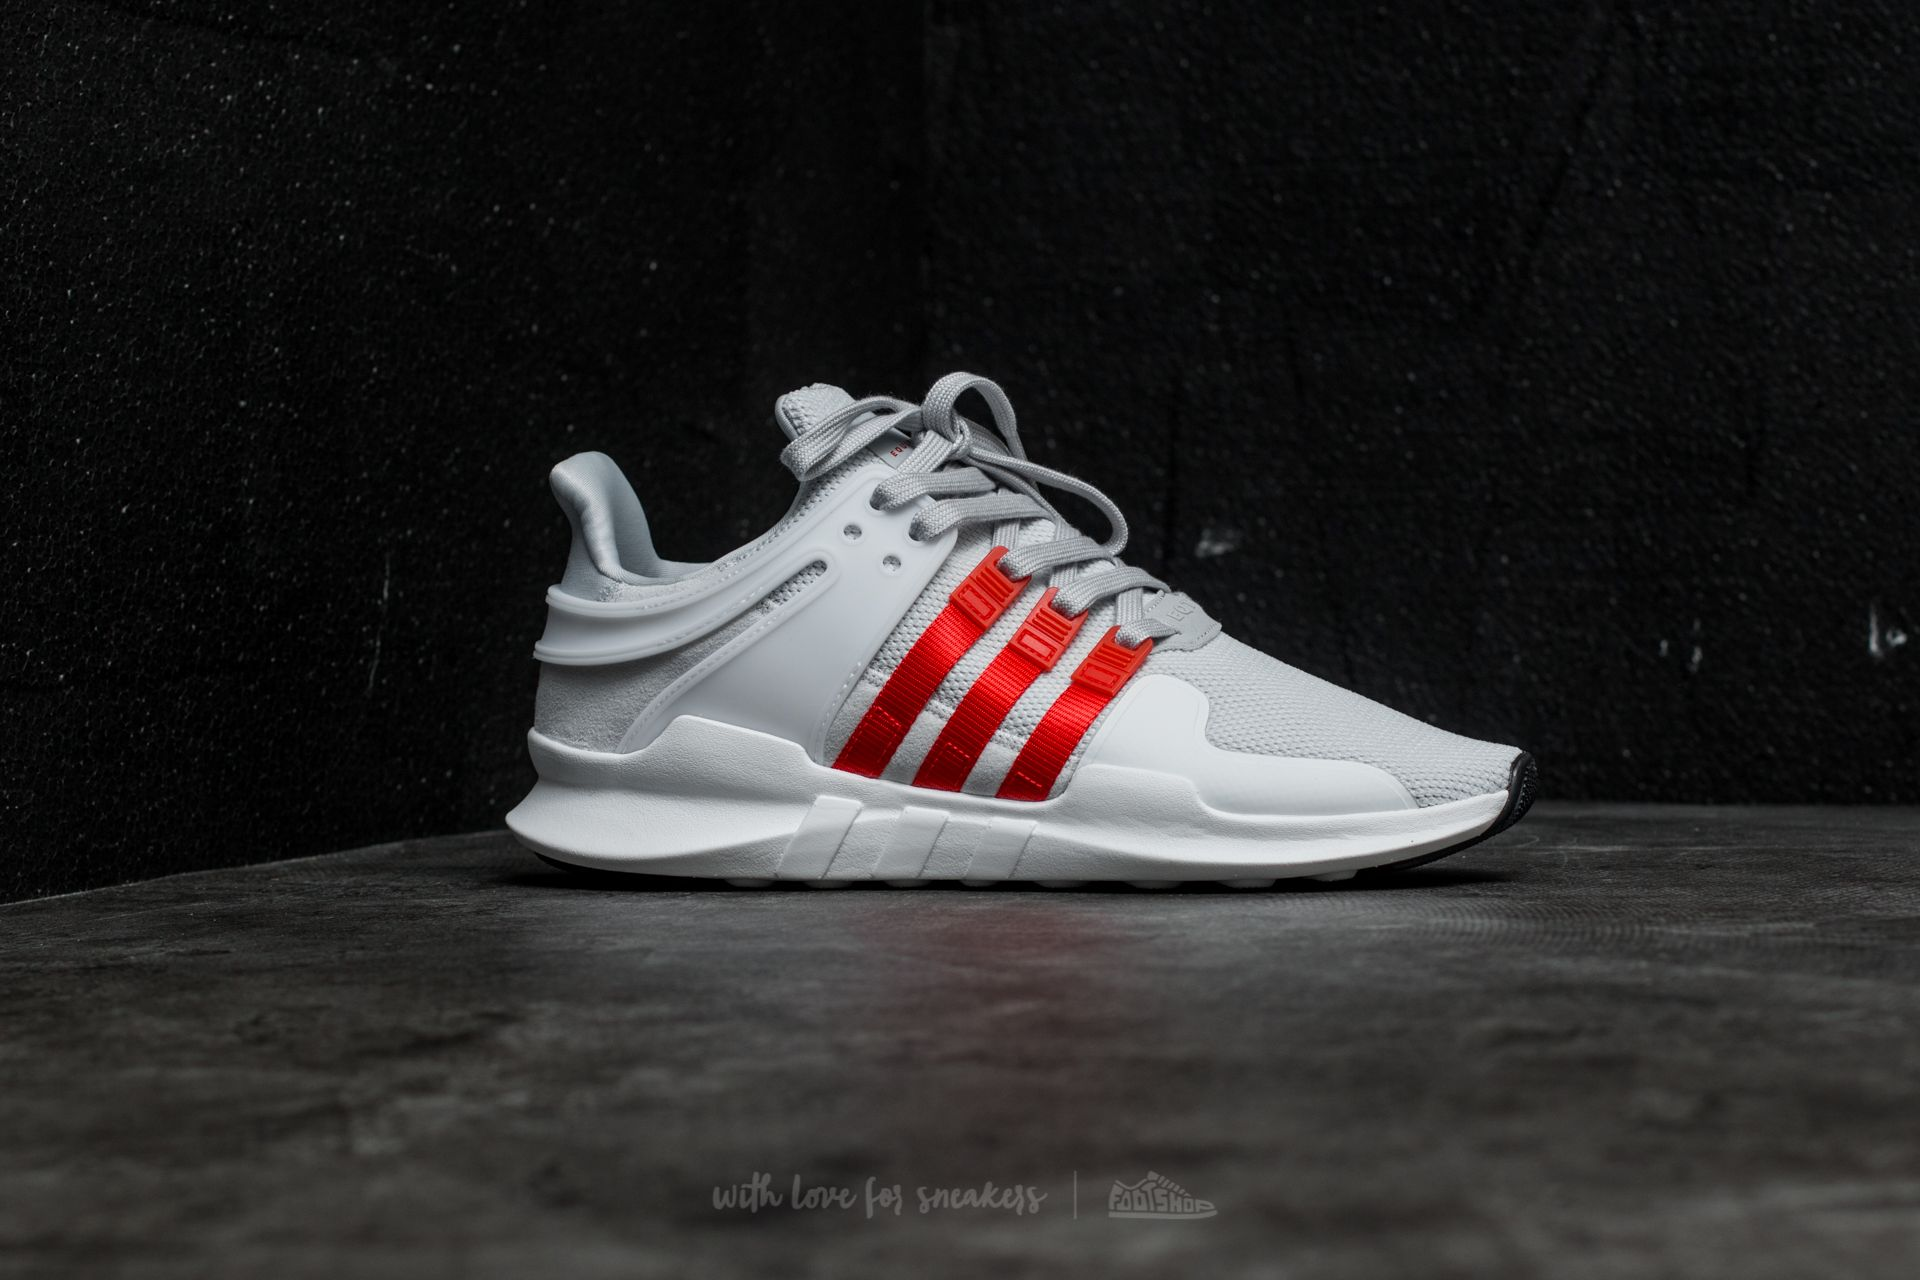 promo code 64ae6 86326 adidas EQT Support ADV Clear Grey /Bold Orange/ Ftw White ...